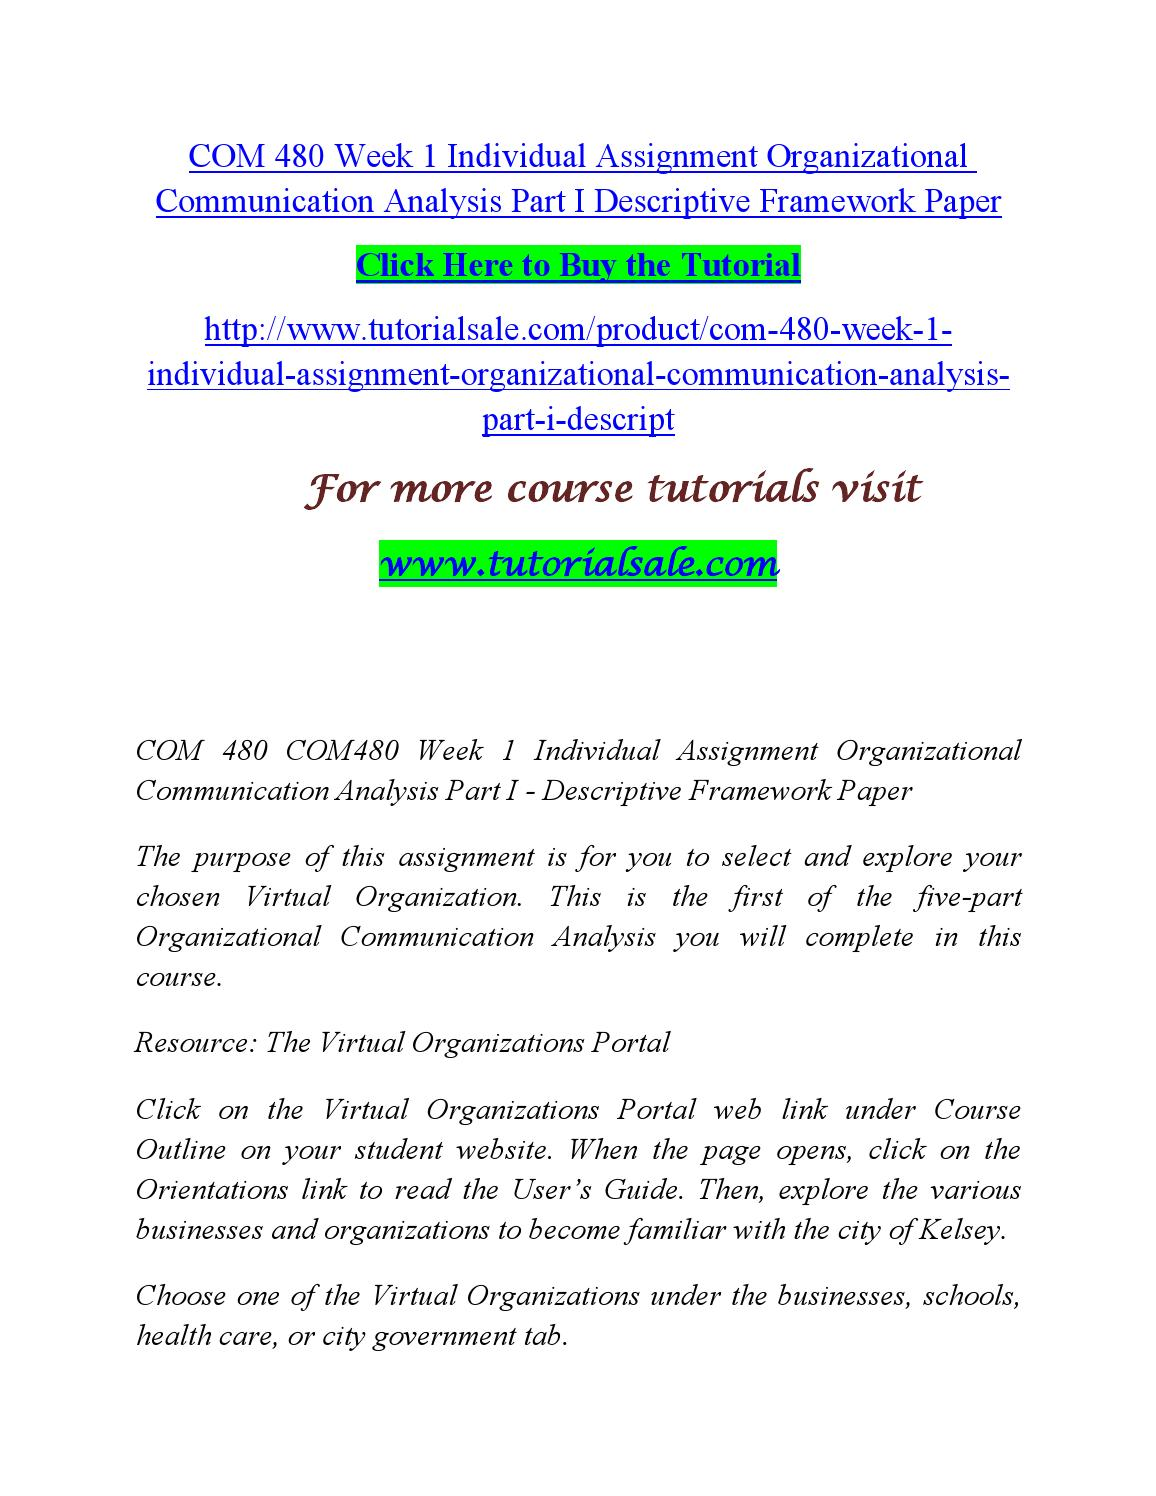 Com 480 organizational communication analysis framework paper